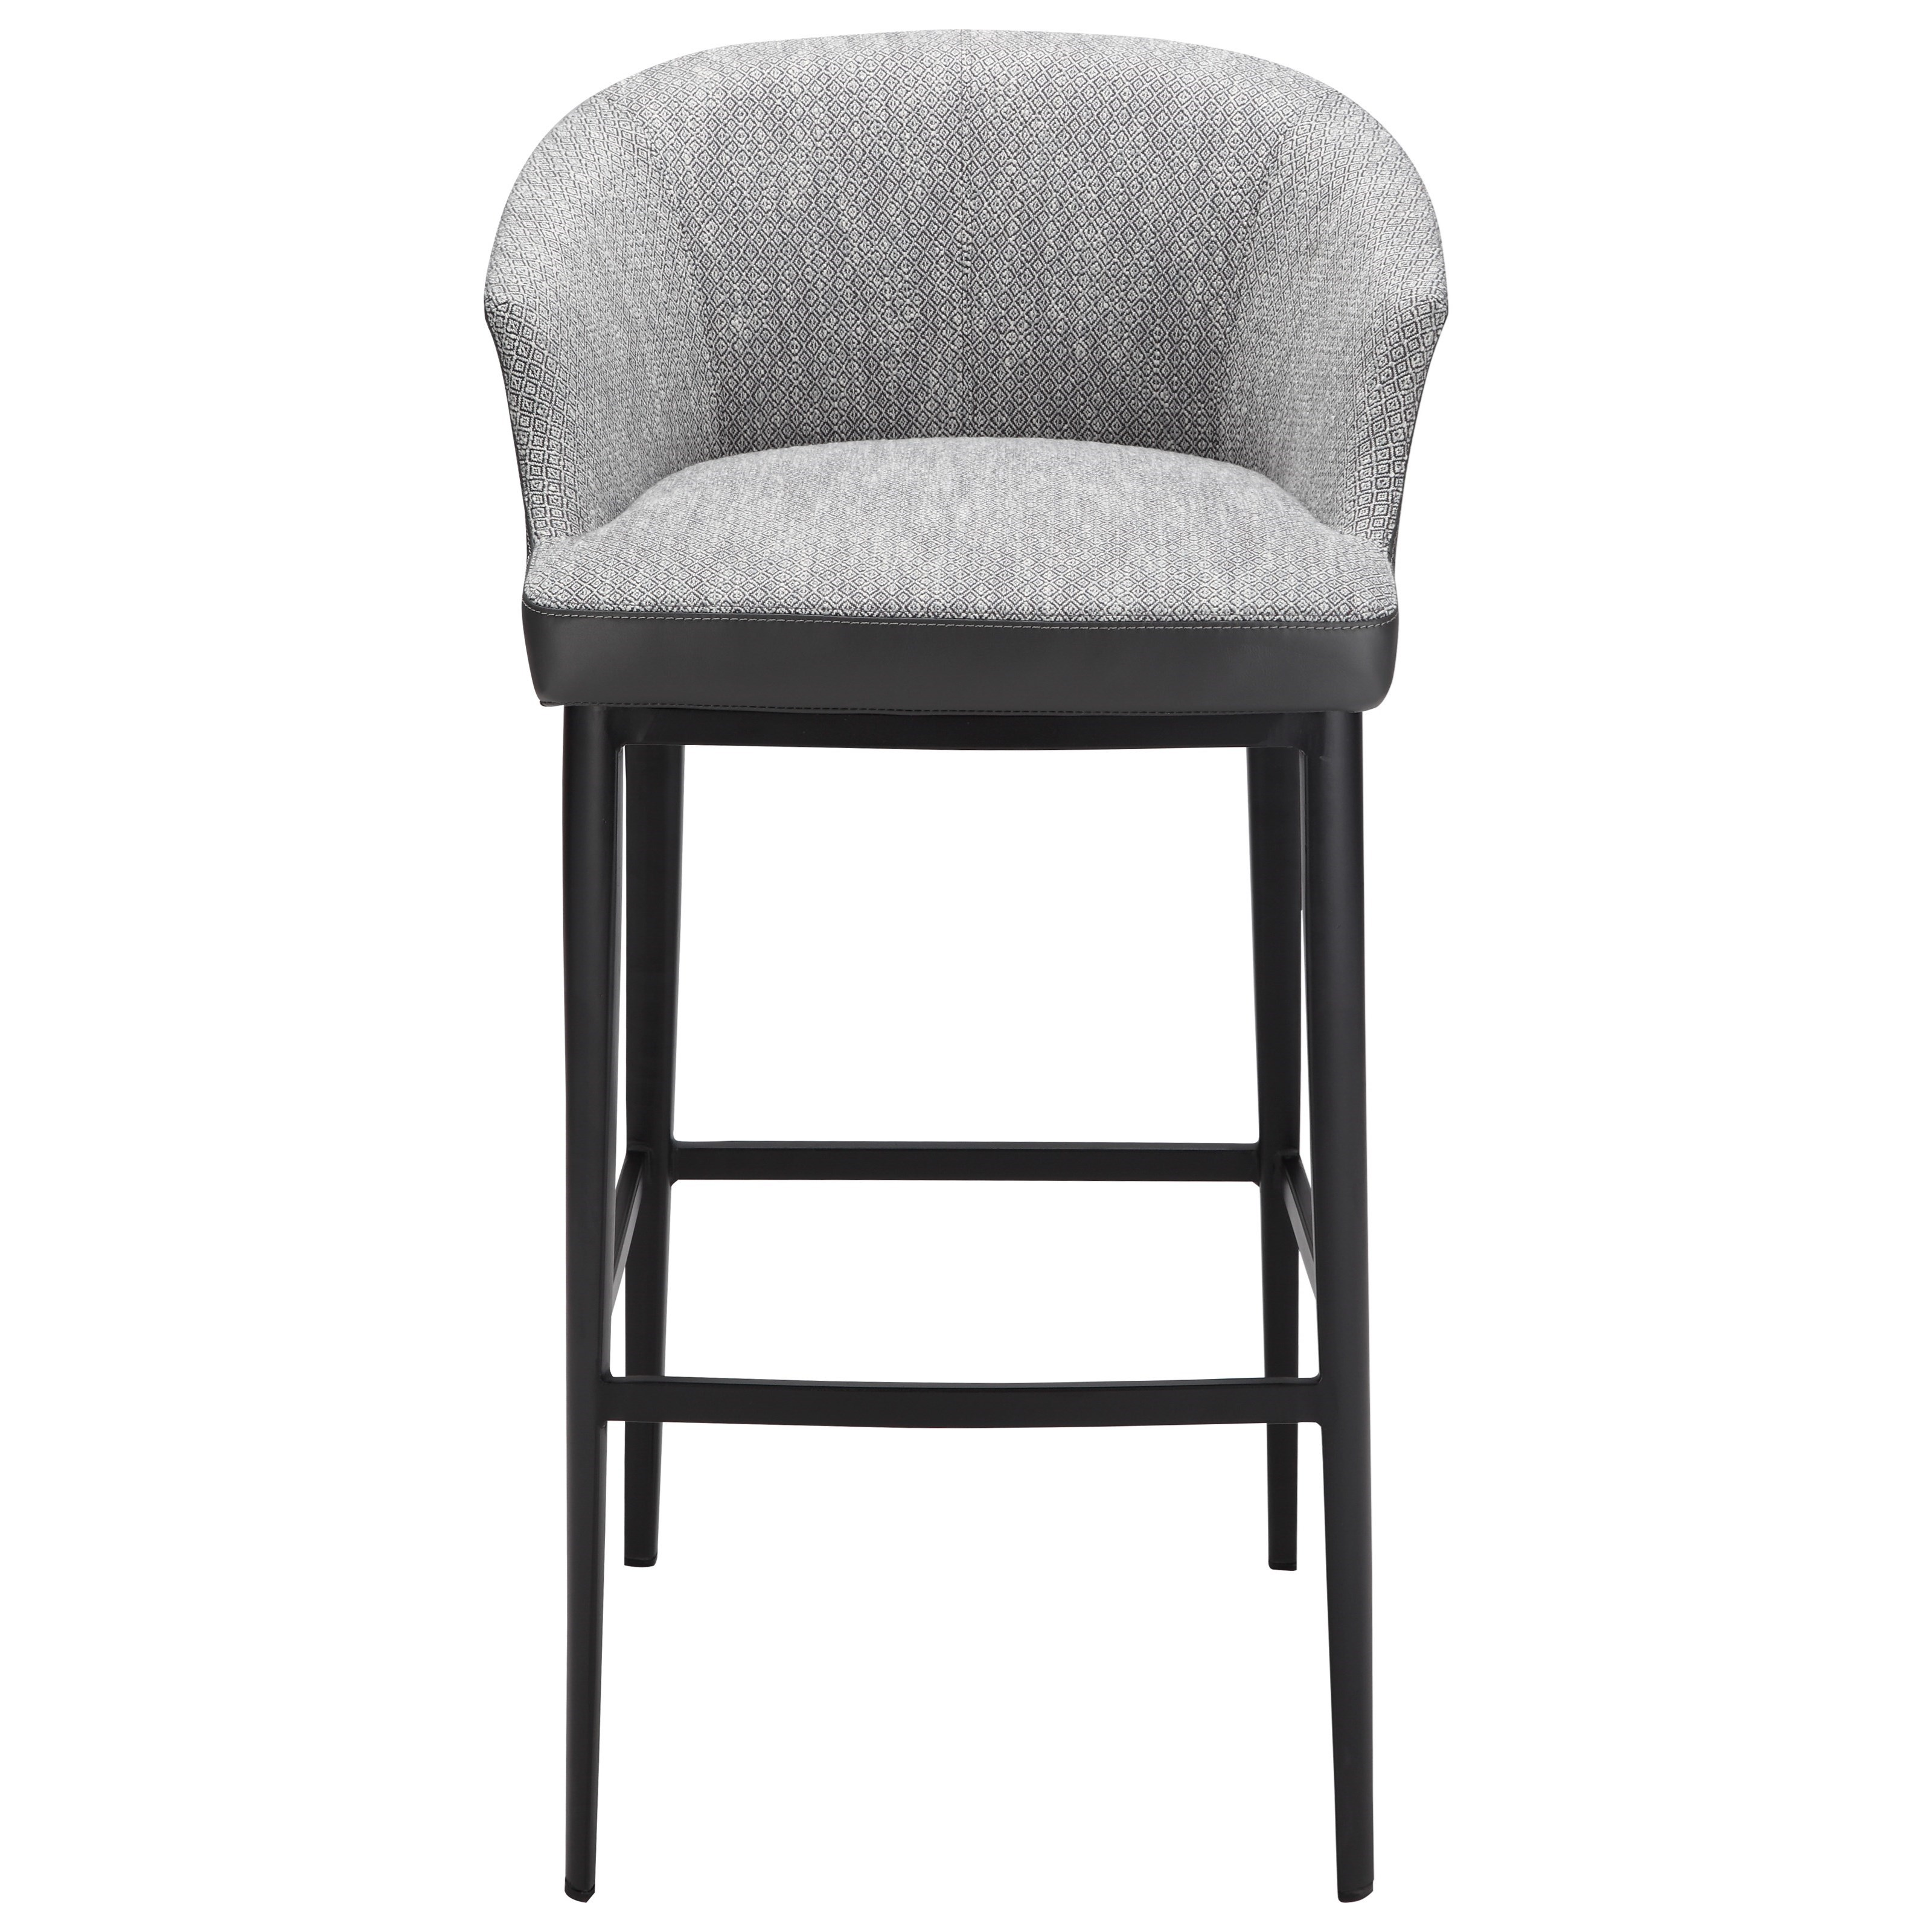 Beckett Bar Stool by Moe's Home Collection at Stoney Creek Furniture